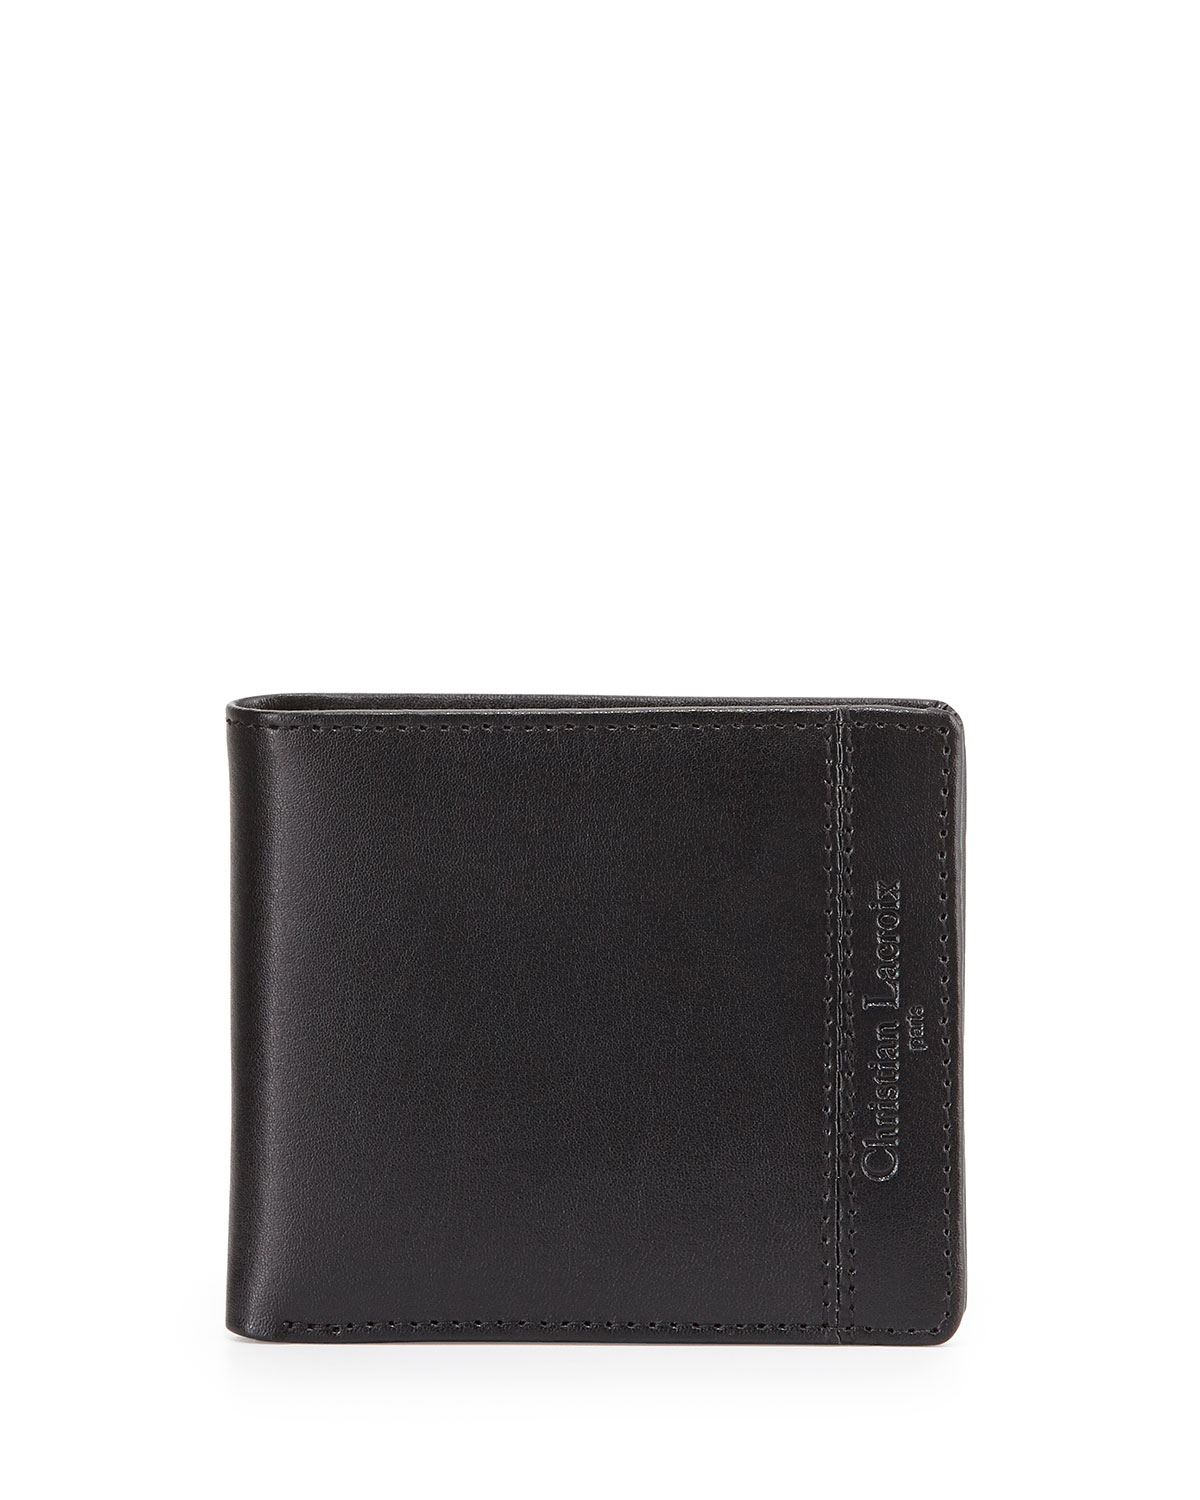 lyst christian lacroix hipster bifold leather wallet in